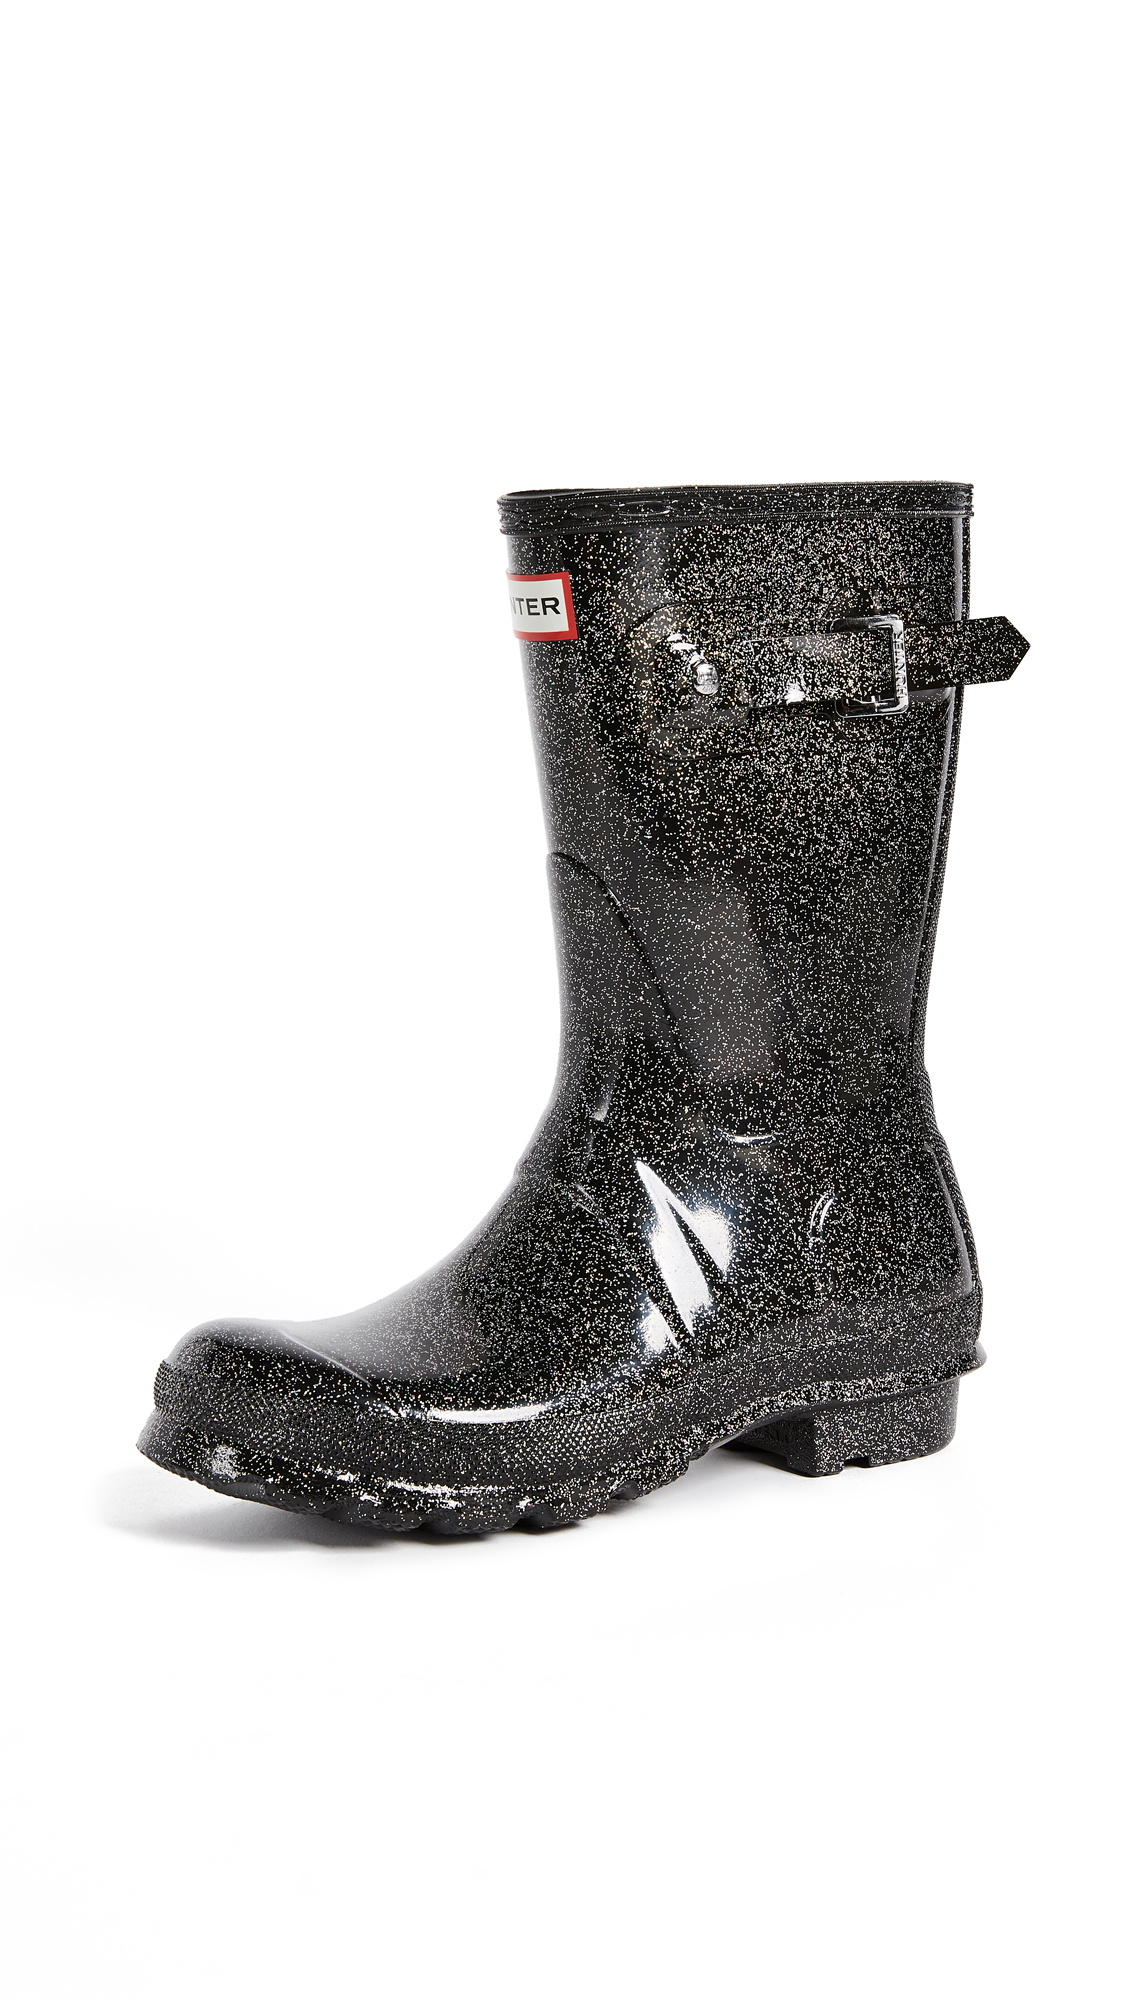 Hunter Boots Original Starcloud Short Boots - Black Multi